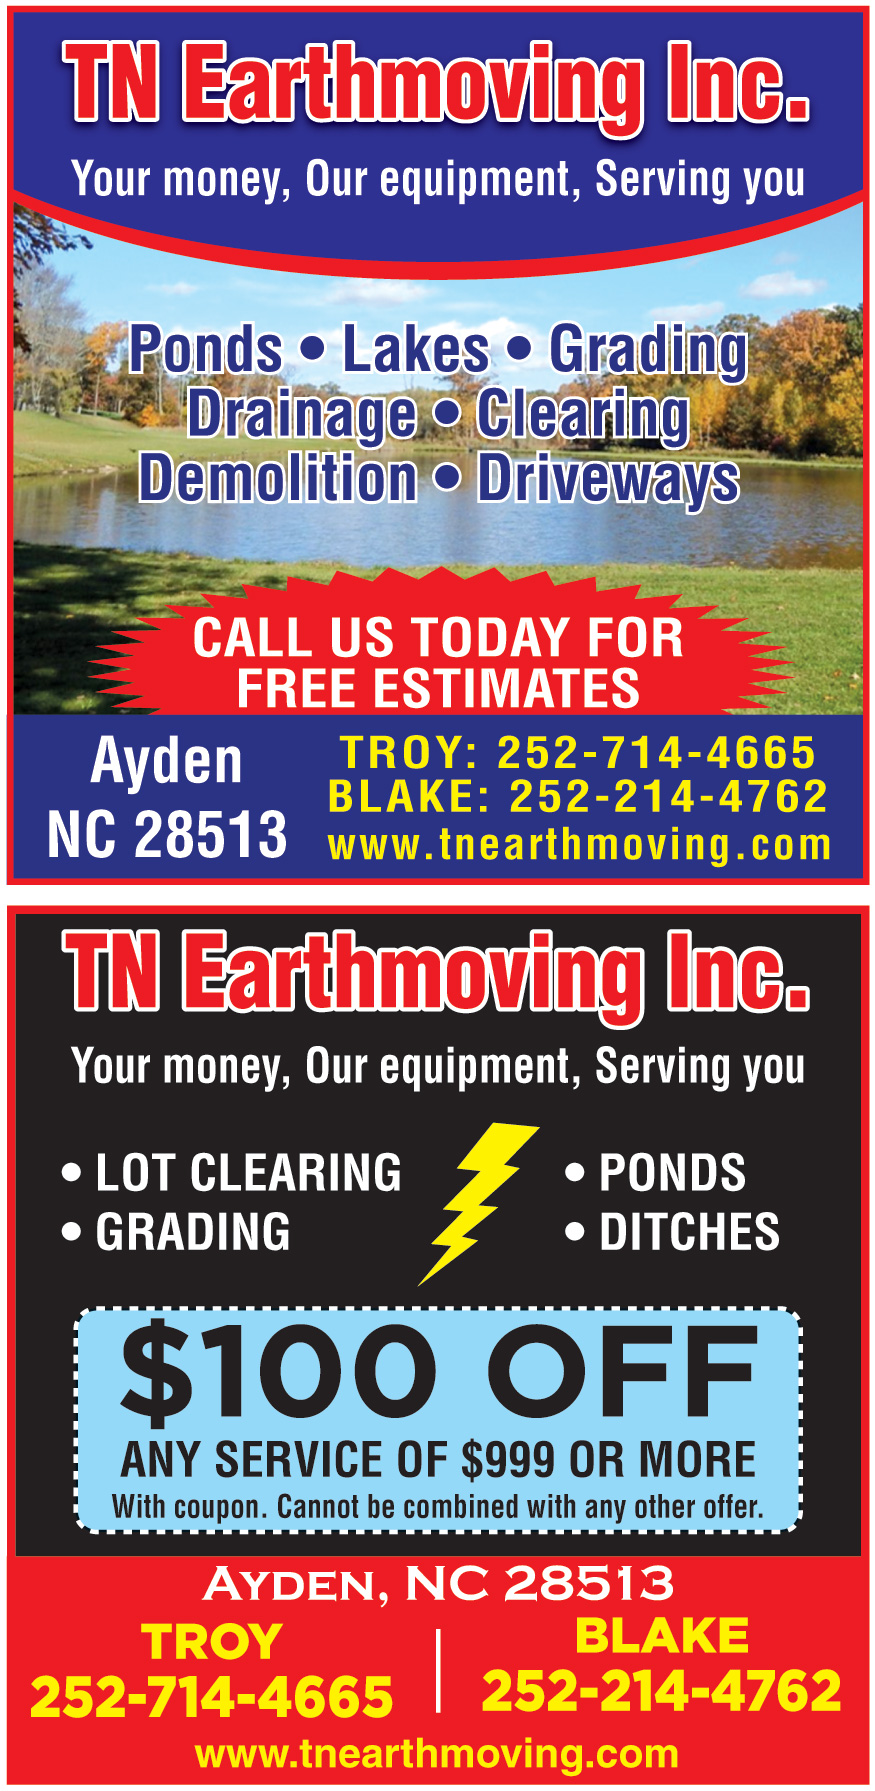 TN EARTHMOVING